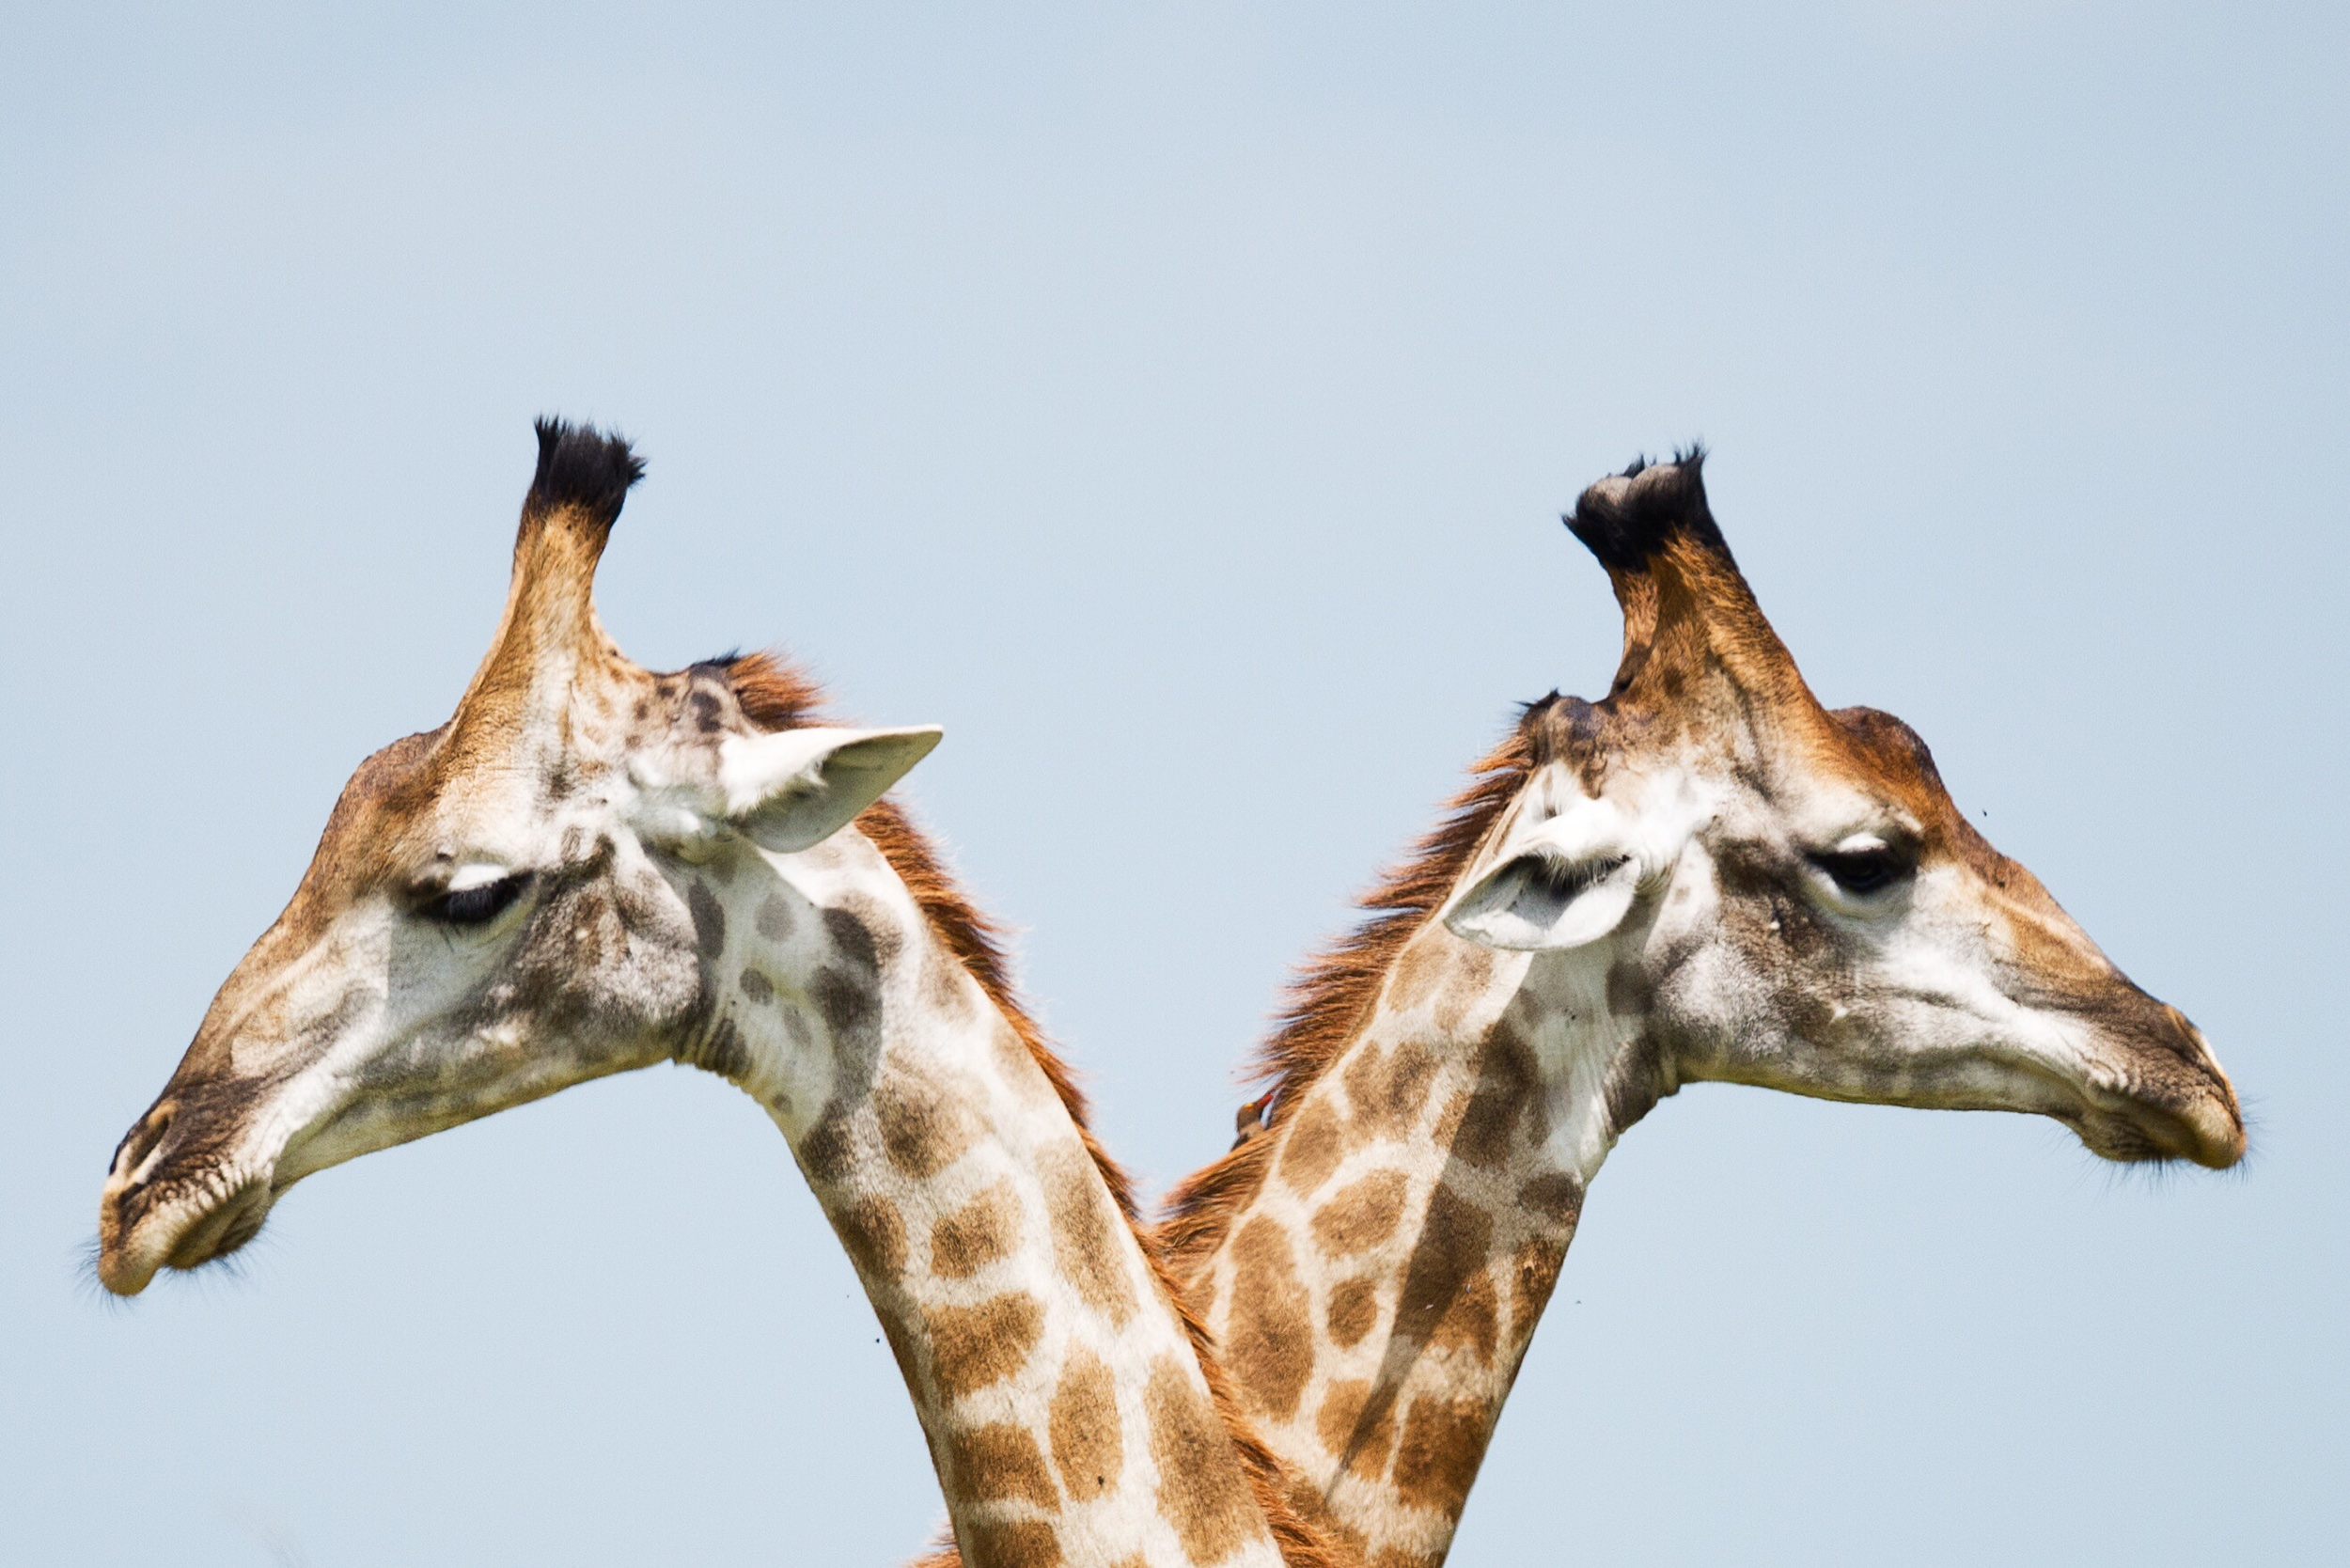 Much like internet interviews, two giraffes are better than one. Now if you can somehow get two giraffe interviews… well, that would surely break the internet.